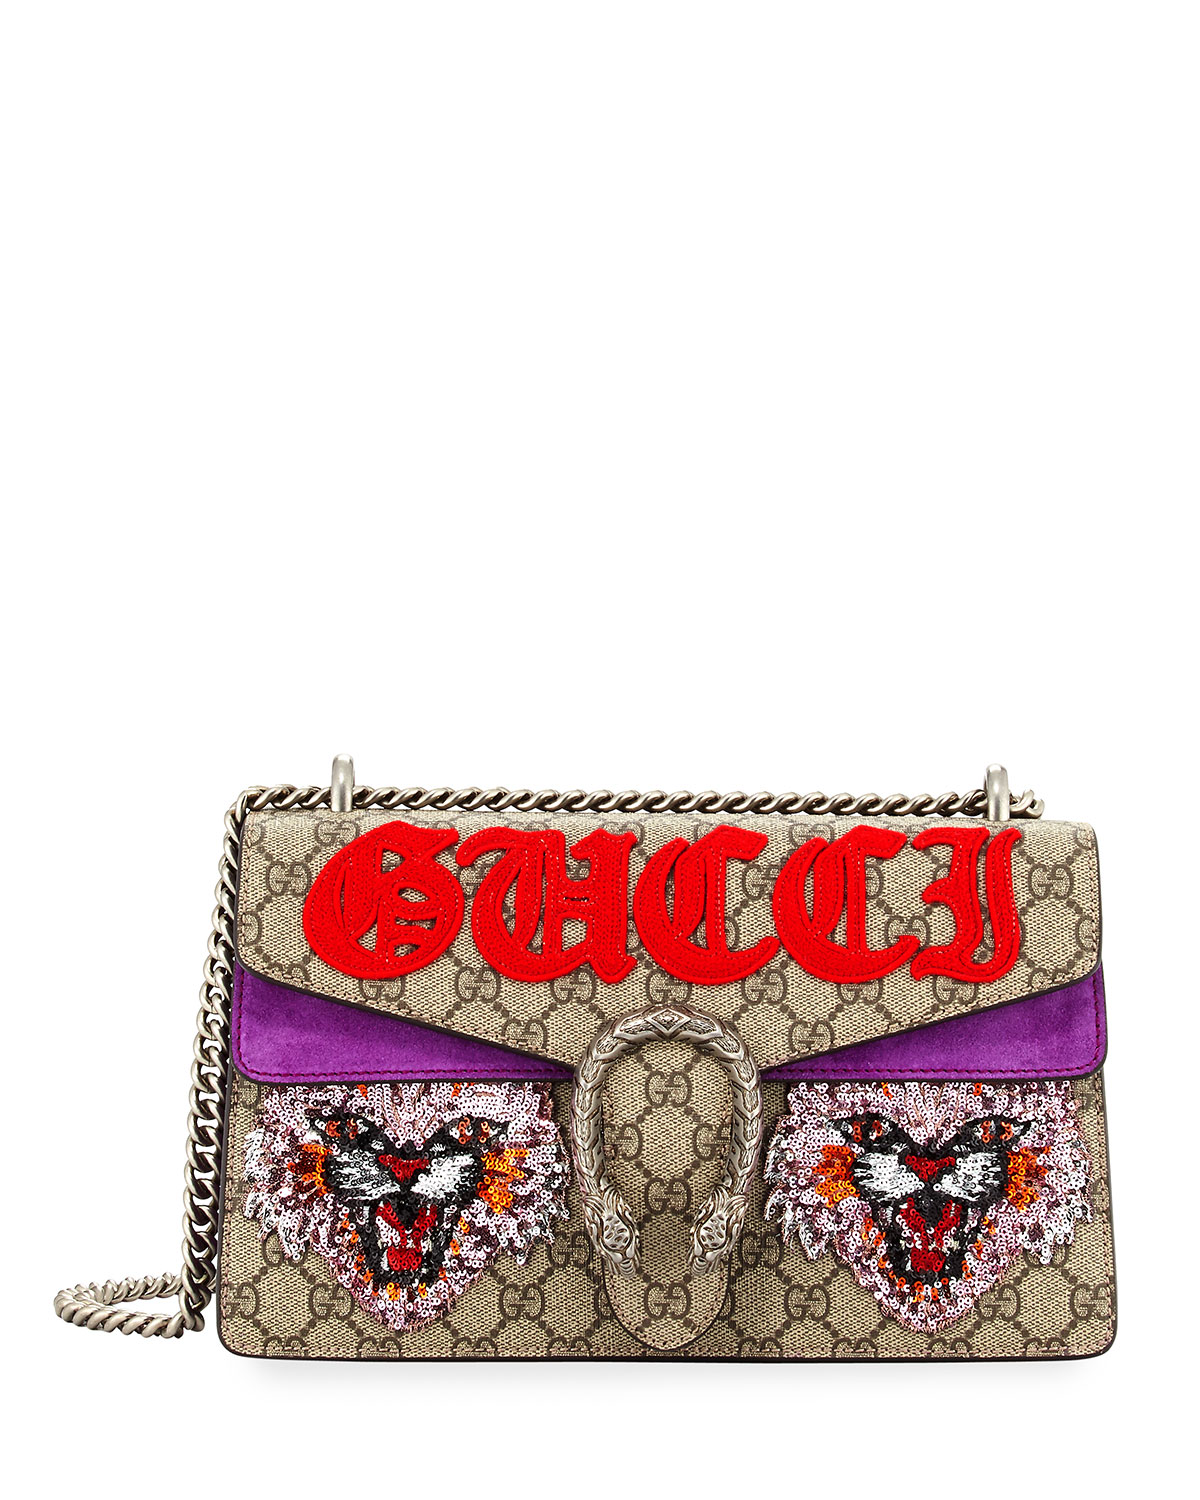 ae0d7d83ae3a42 Gucci Dionysus Small Angry Cat Shoulder Bag | Neiman Marcus